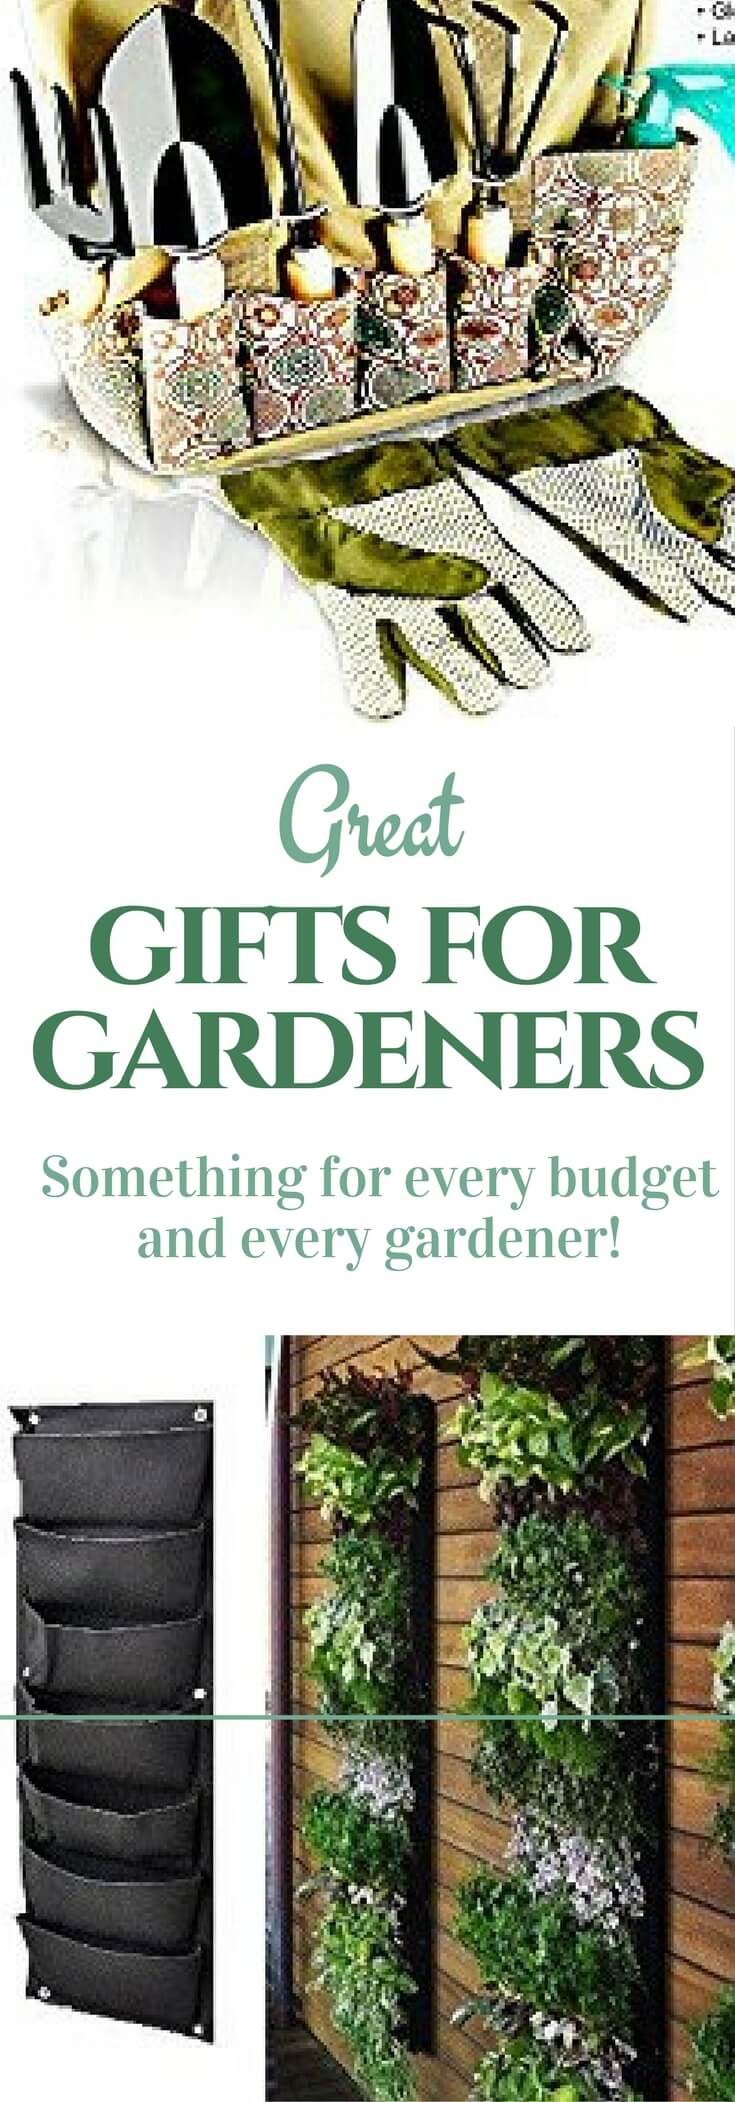 Perfect Gifts For Gardeners On Your List! Inexpensive And Splurge Ideas  Your Gardener Will Love